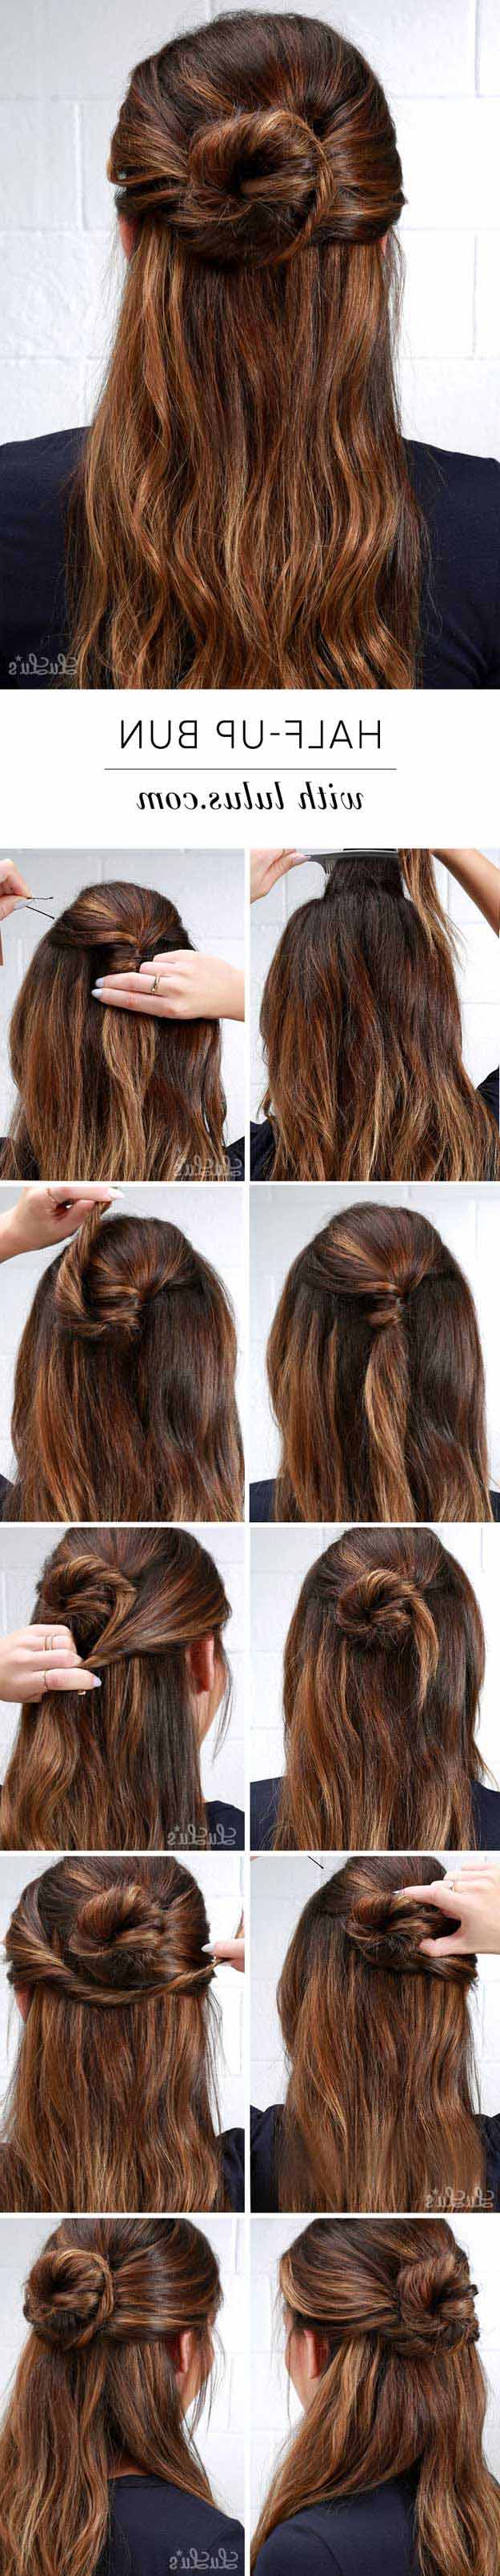 Most Popular Simple Half Bun Hairstyles For 31 Amazing Half Up Half Down Hairstyles For Long Hair – The (View 11 of 20)